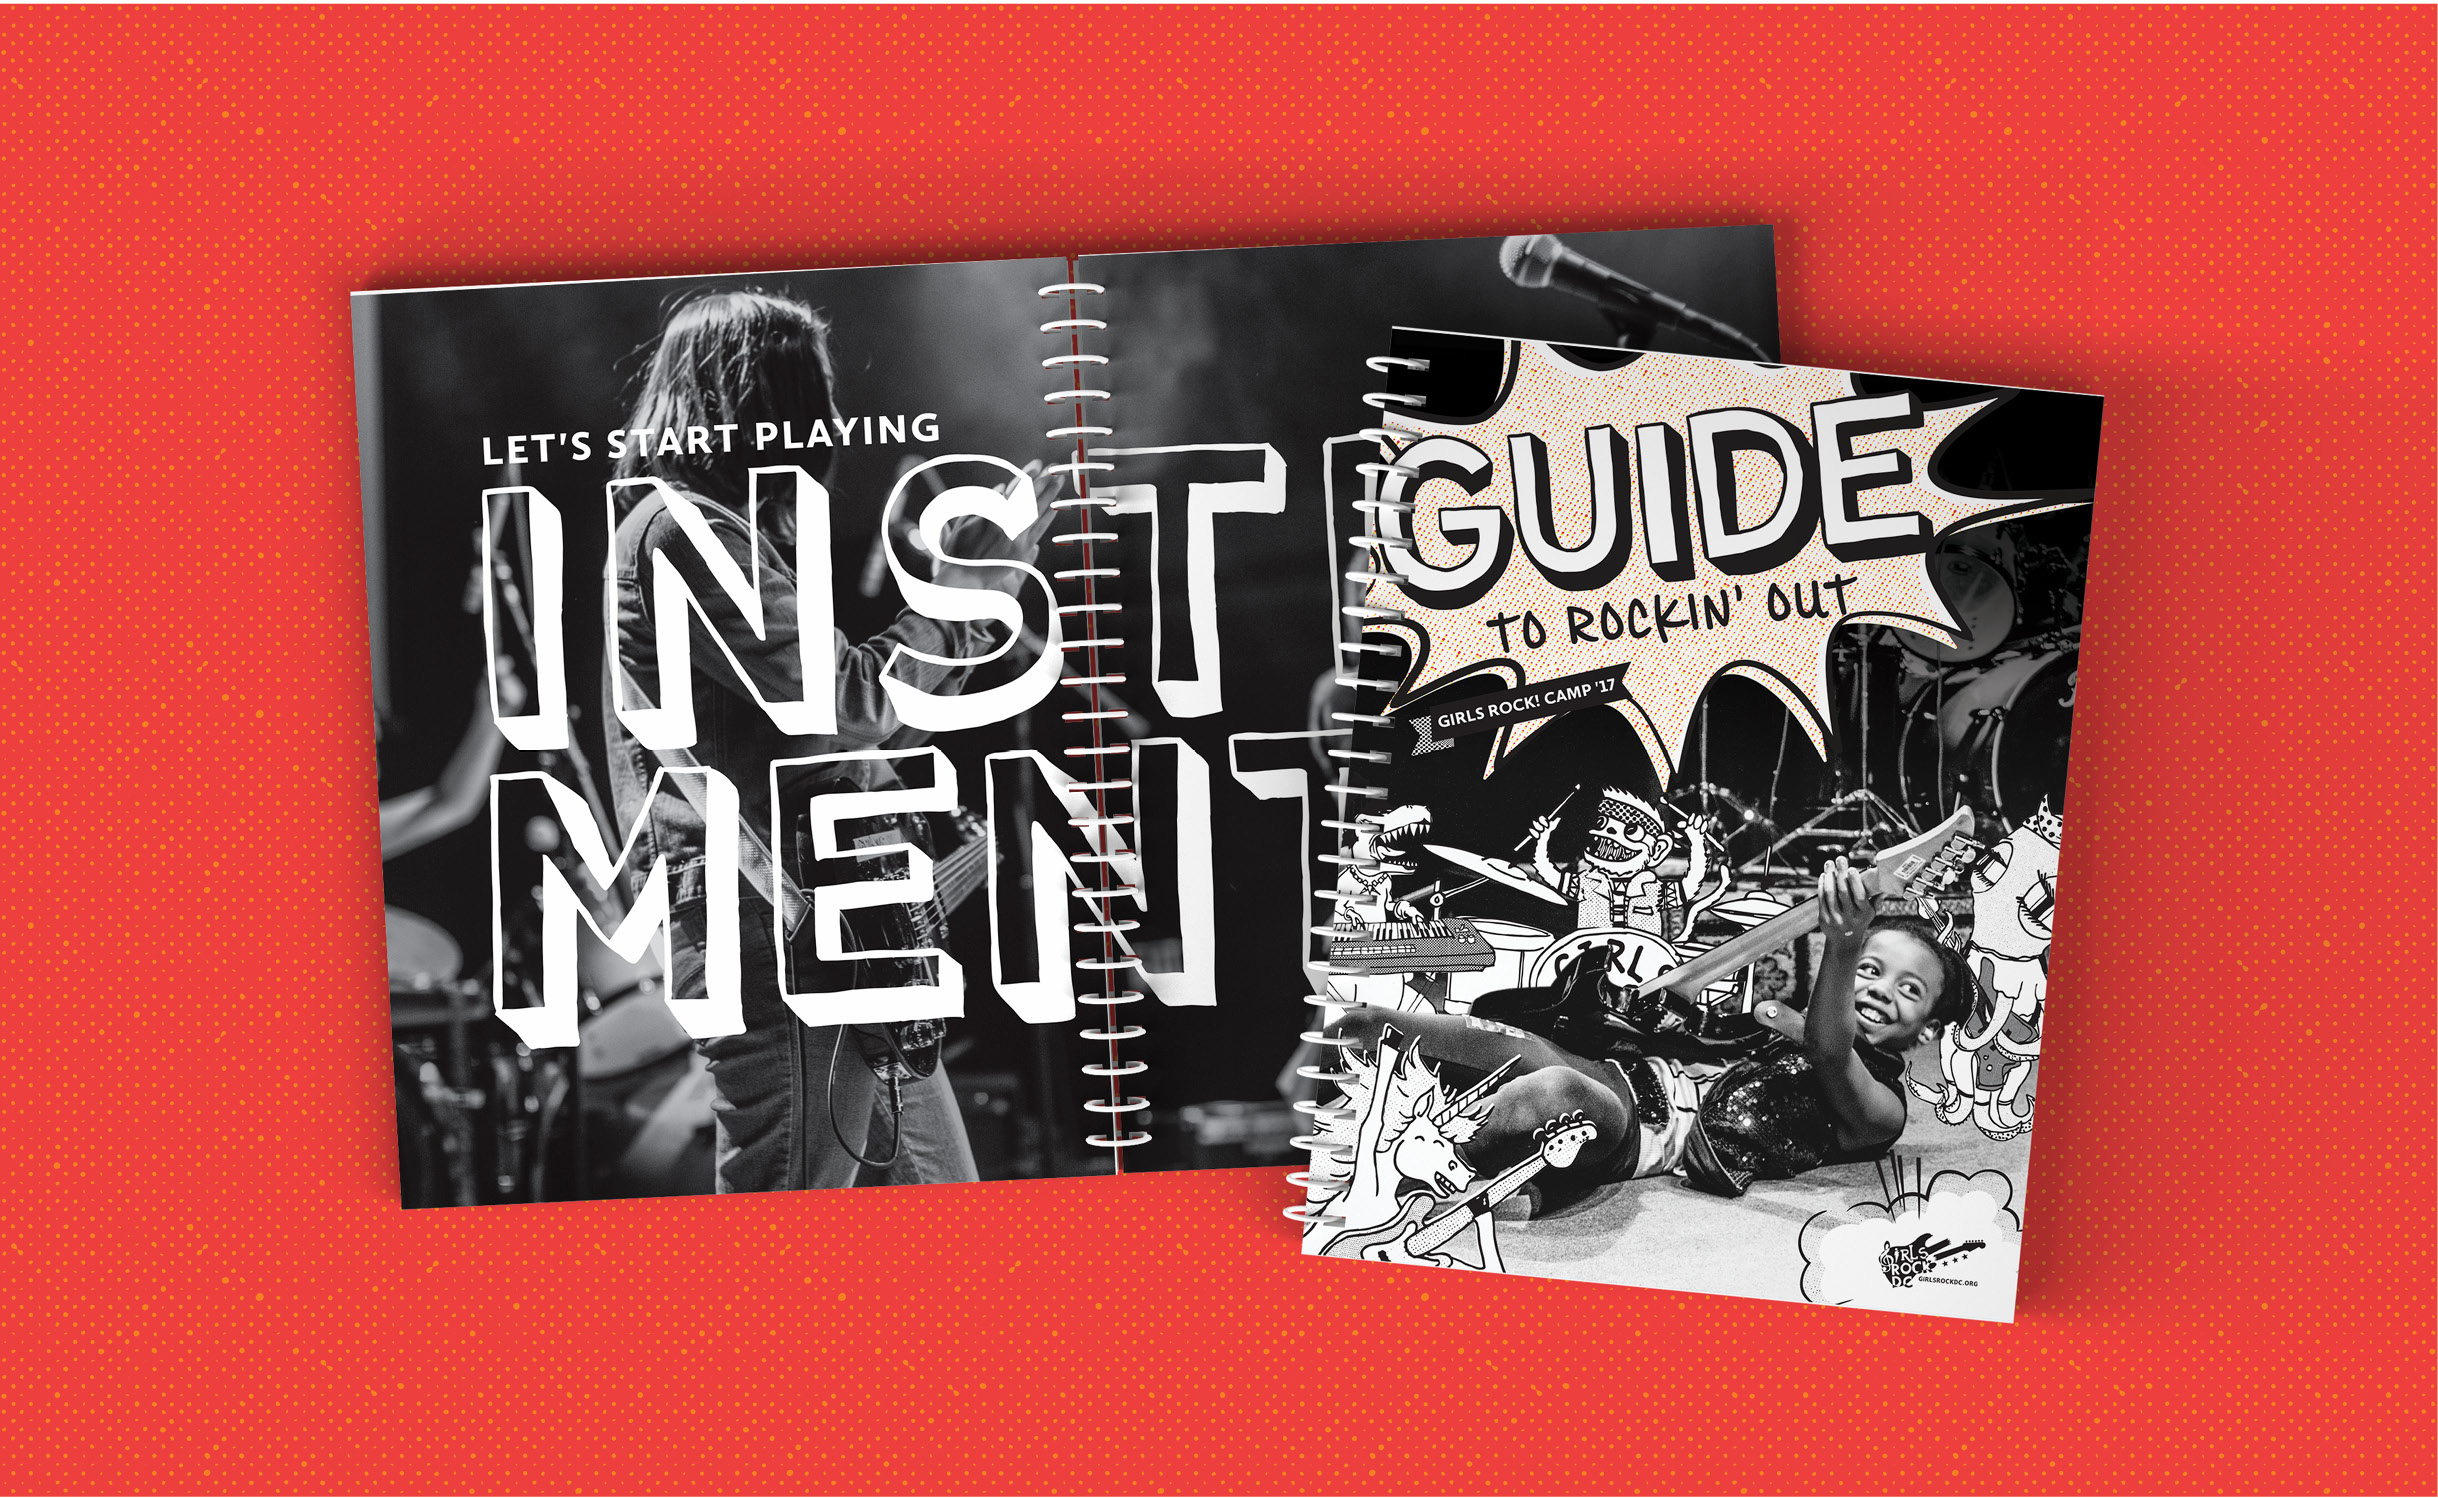 "An inside spread of the book partially obscured by another, closed book showing the cover. The spread is the same from the previous image and shows a black and white, grainy, photo of a youth rockin' on stage with the words ""Let's Start PLaying"" in sans serif typeface and INSTRUMENTS in a comic-like typeface are set in white on top of the photo. The cover shows a black and white, grainy, photo of a youth rockin' on guitar, on stage at the 9:30 club; they are surrounded by line illustrations of: a monkey playing drums, an alligator playing keys, an octopus playing guitar, and a unicorn playing bass. There is a starburst containing the title GUIDE TO ROCKIN OUT. The background of the image is red with an orange dot pattern."